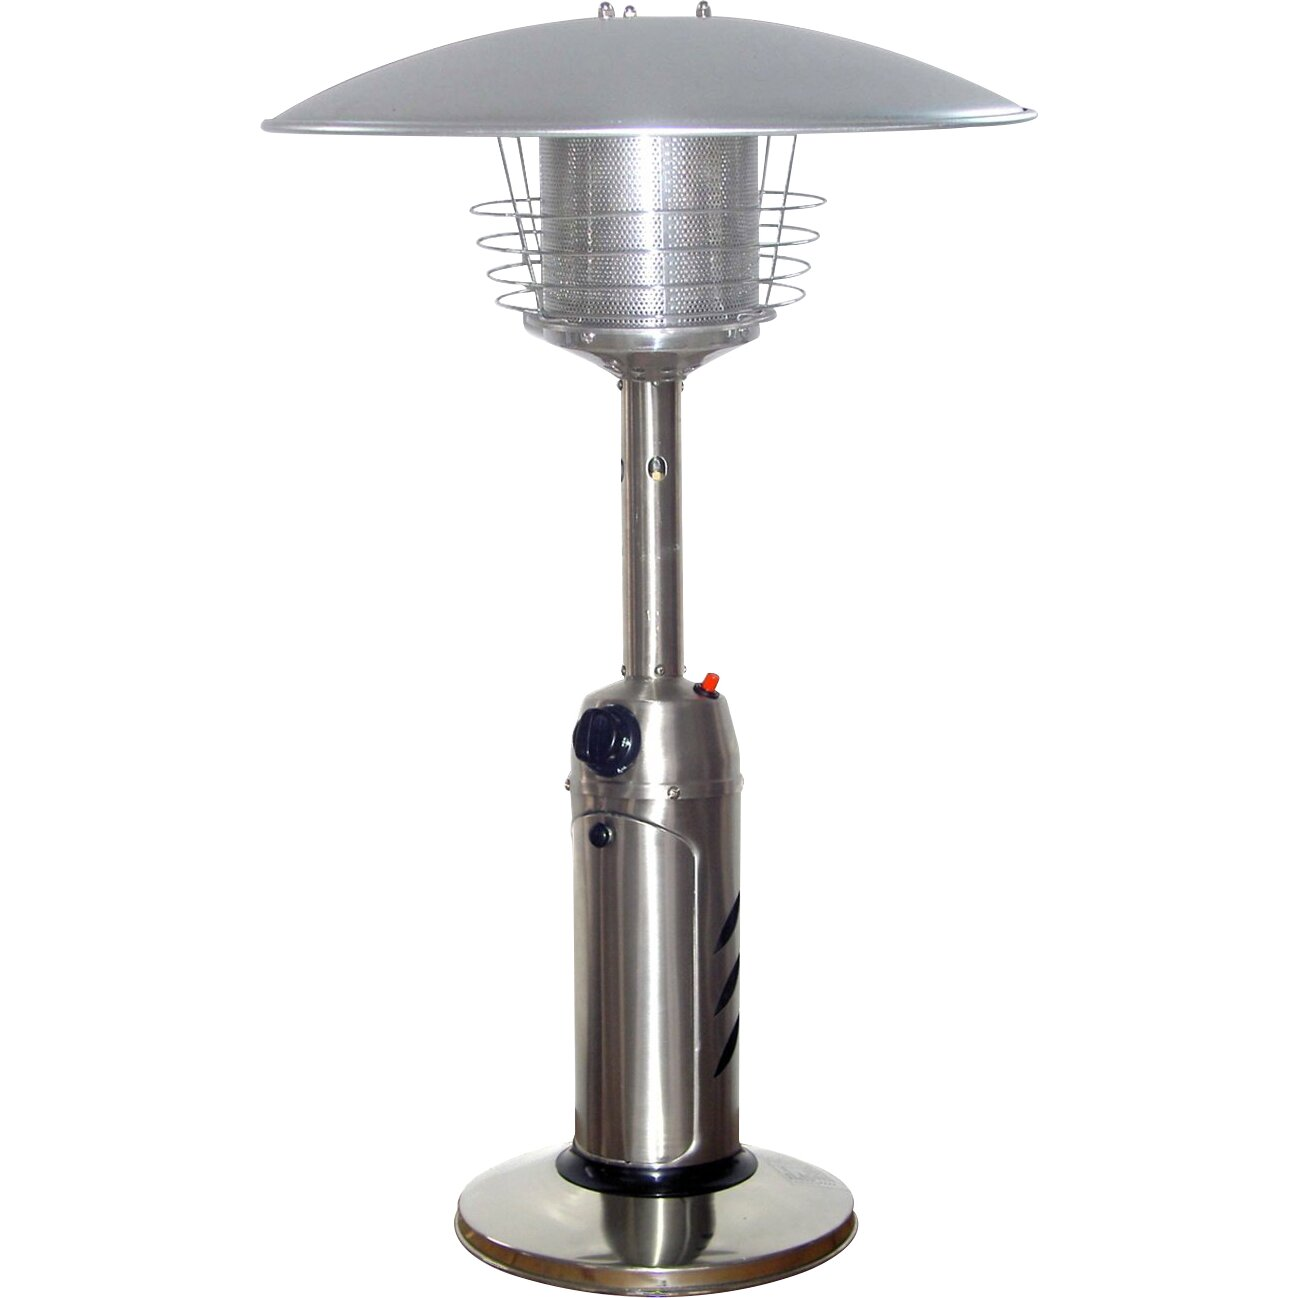 garden radiance propane tabletop patio heater reviews